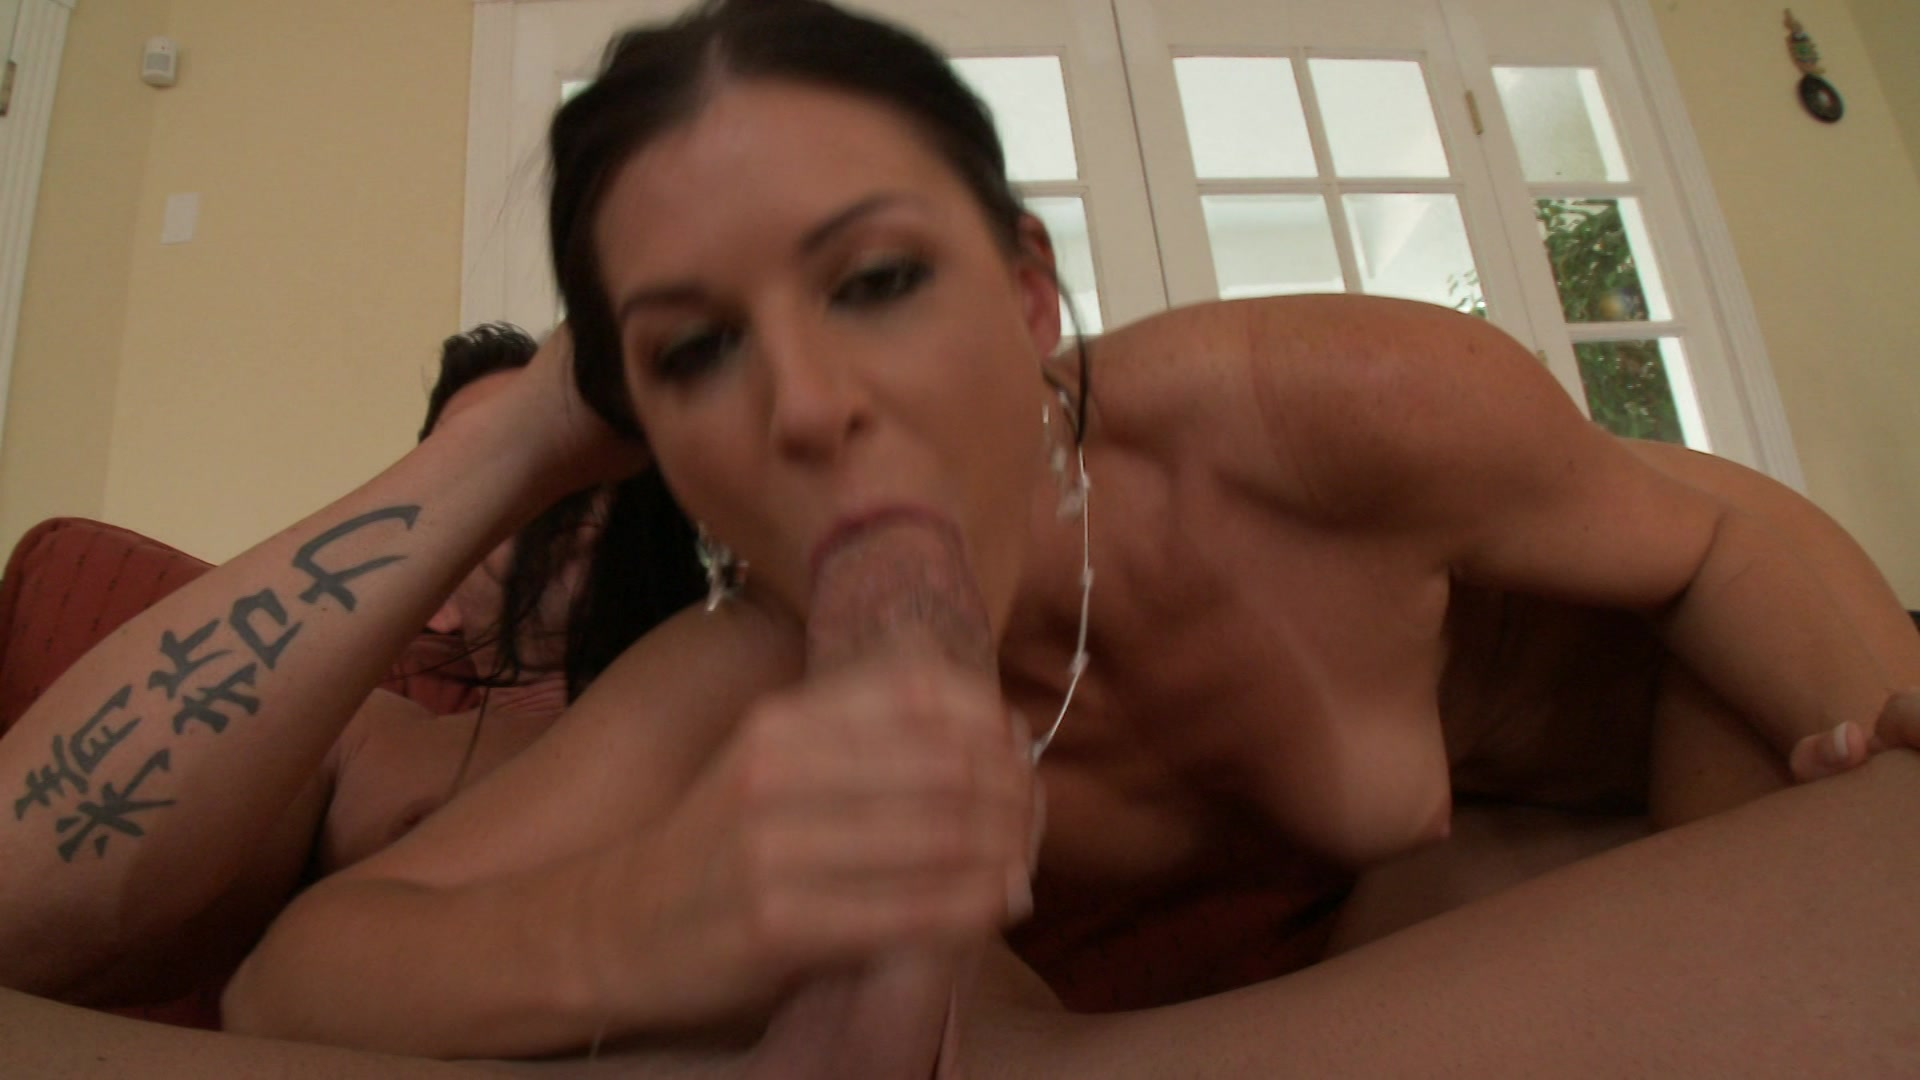 Tridle recommend Brazzers free milf videos